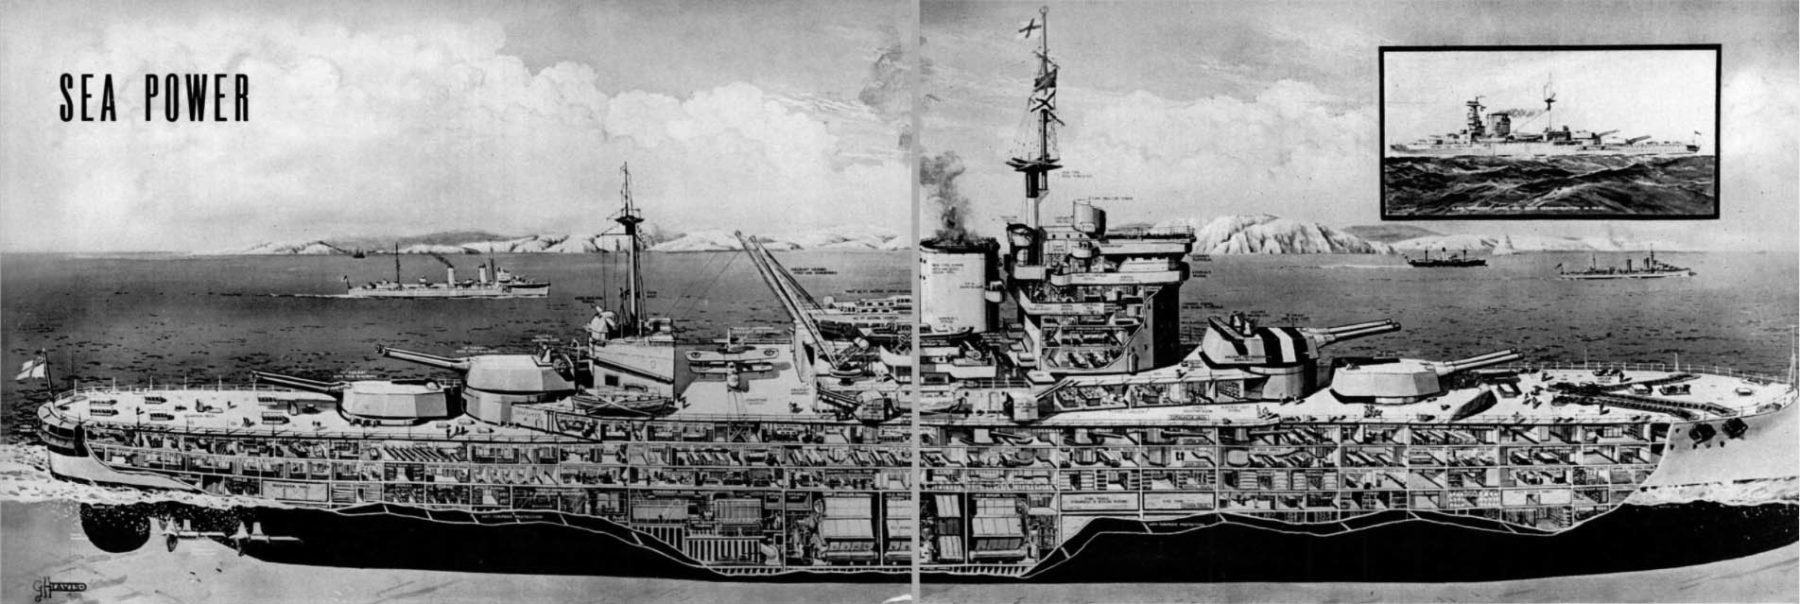 1938 UK magazine article about sea power showing a cutaway of the Warspite